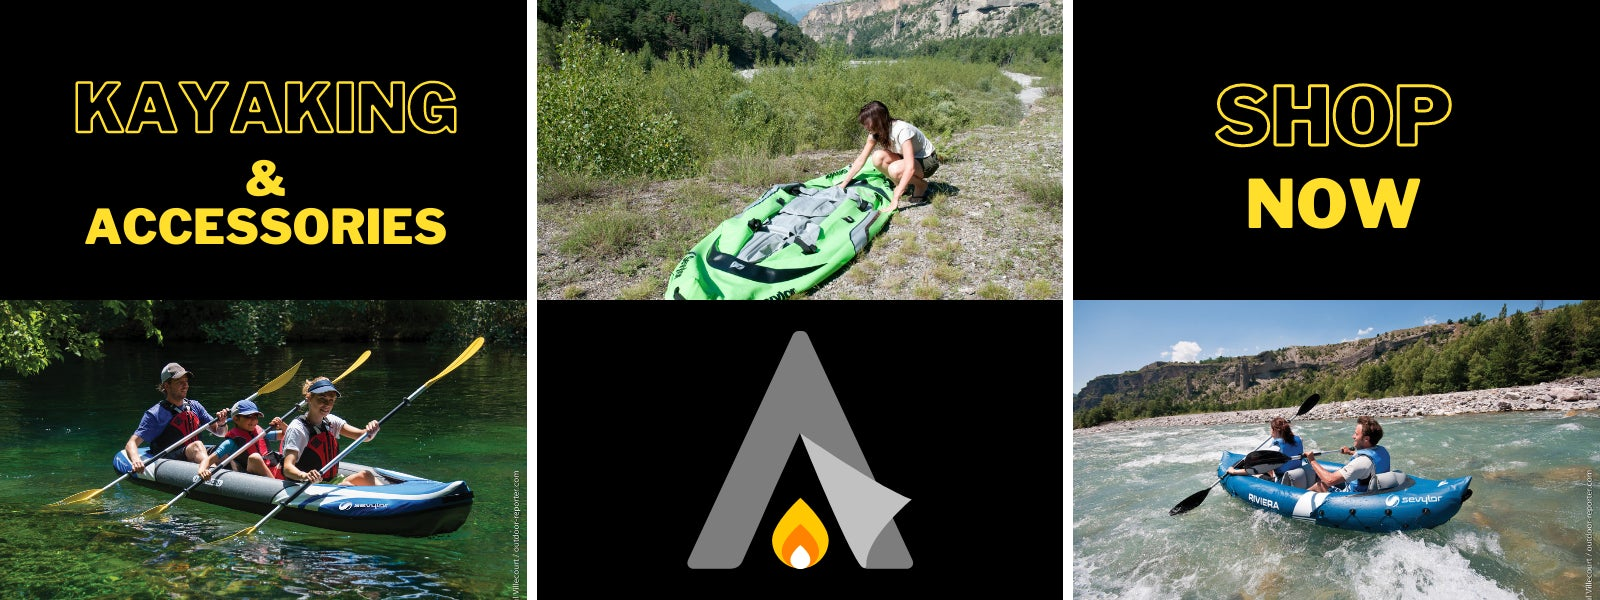 Aztec leisure kayaks & accessories